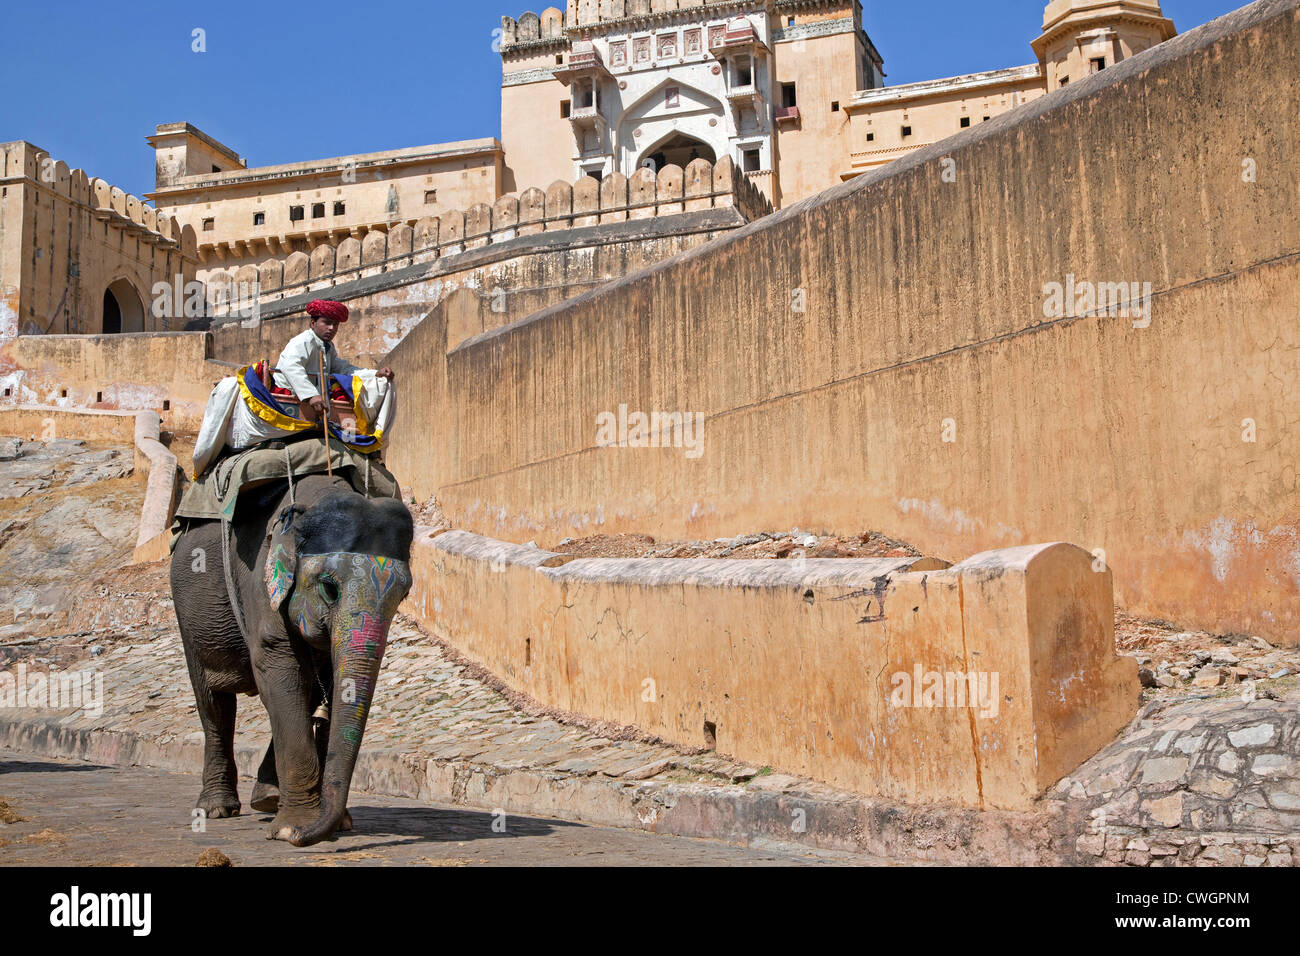 Mahout riding decorated Indian elephant at Amer Fort / Amber Fort, palace in red sandstone at Amer near Jaipur, - Stock Image